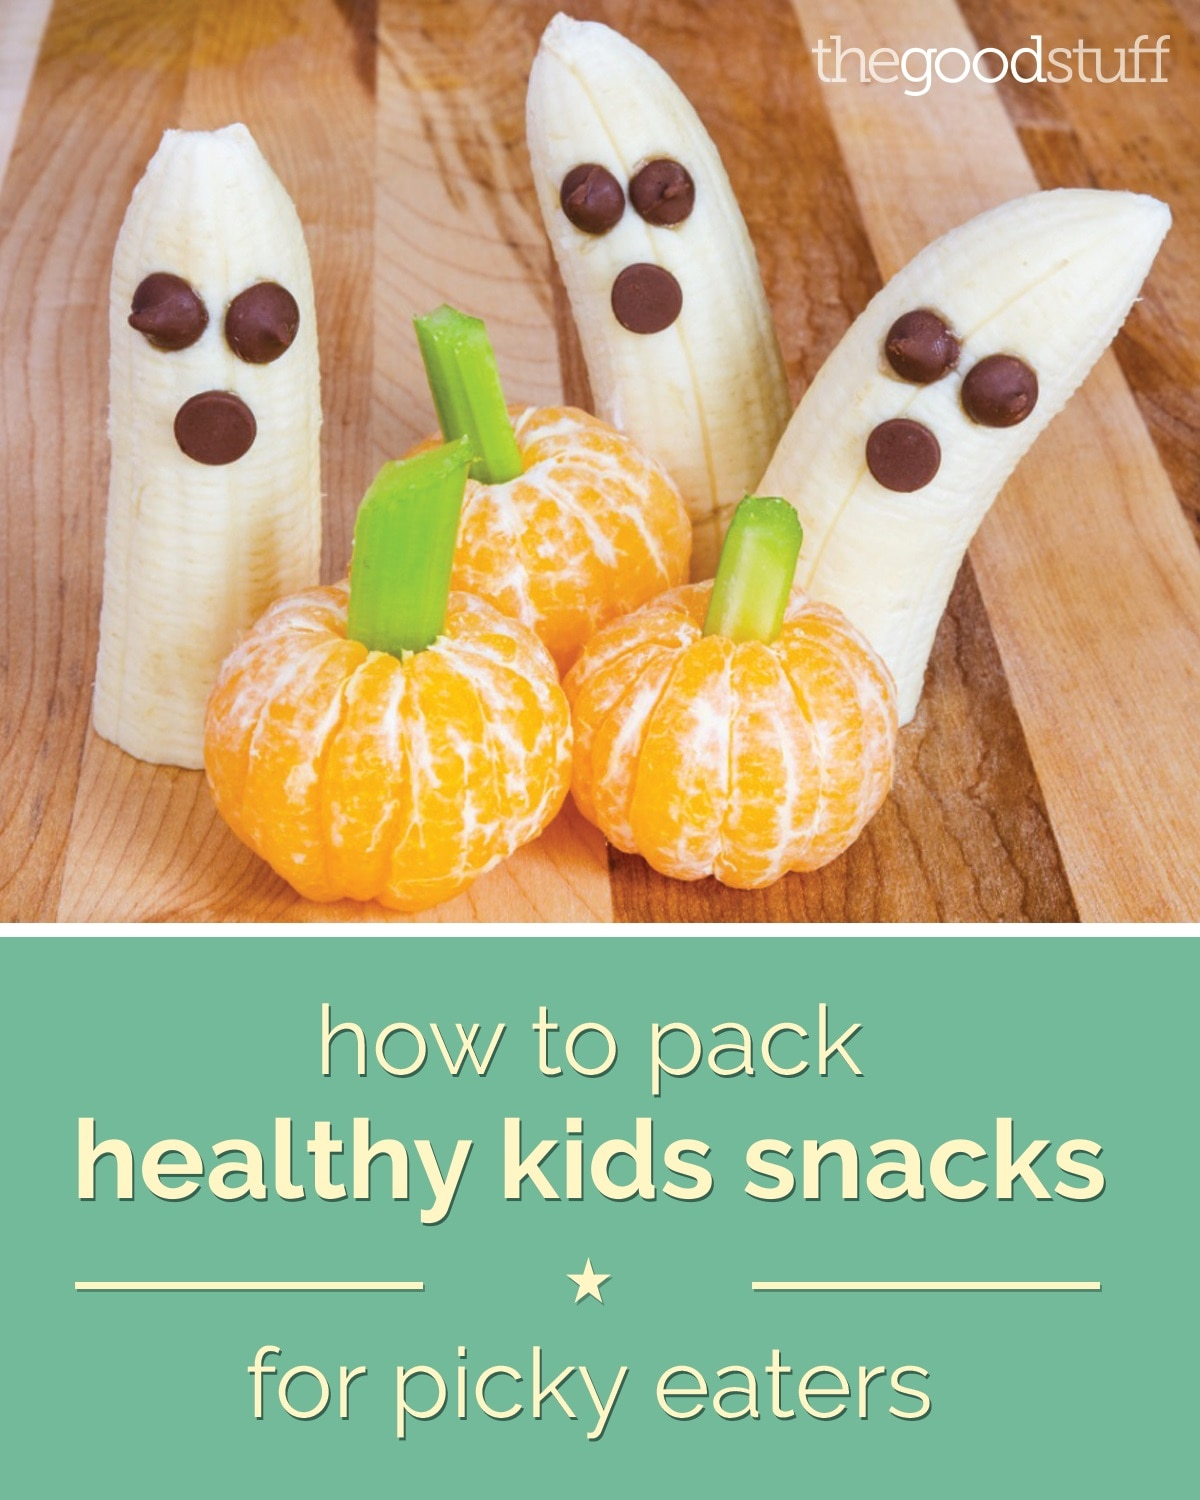 How To Pack Healthy Kids Snacks For Picky Eaters